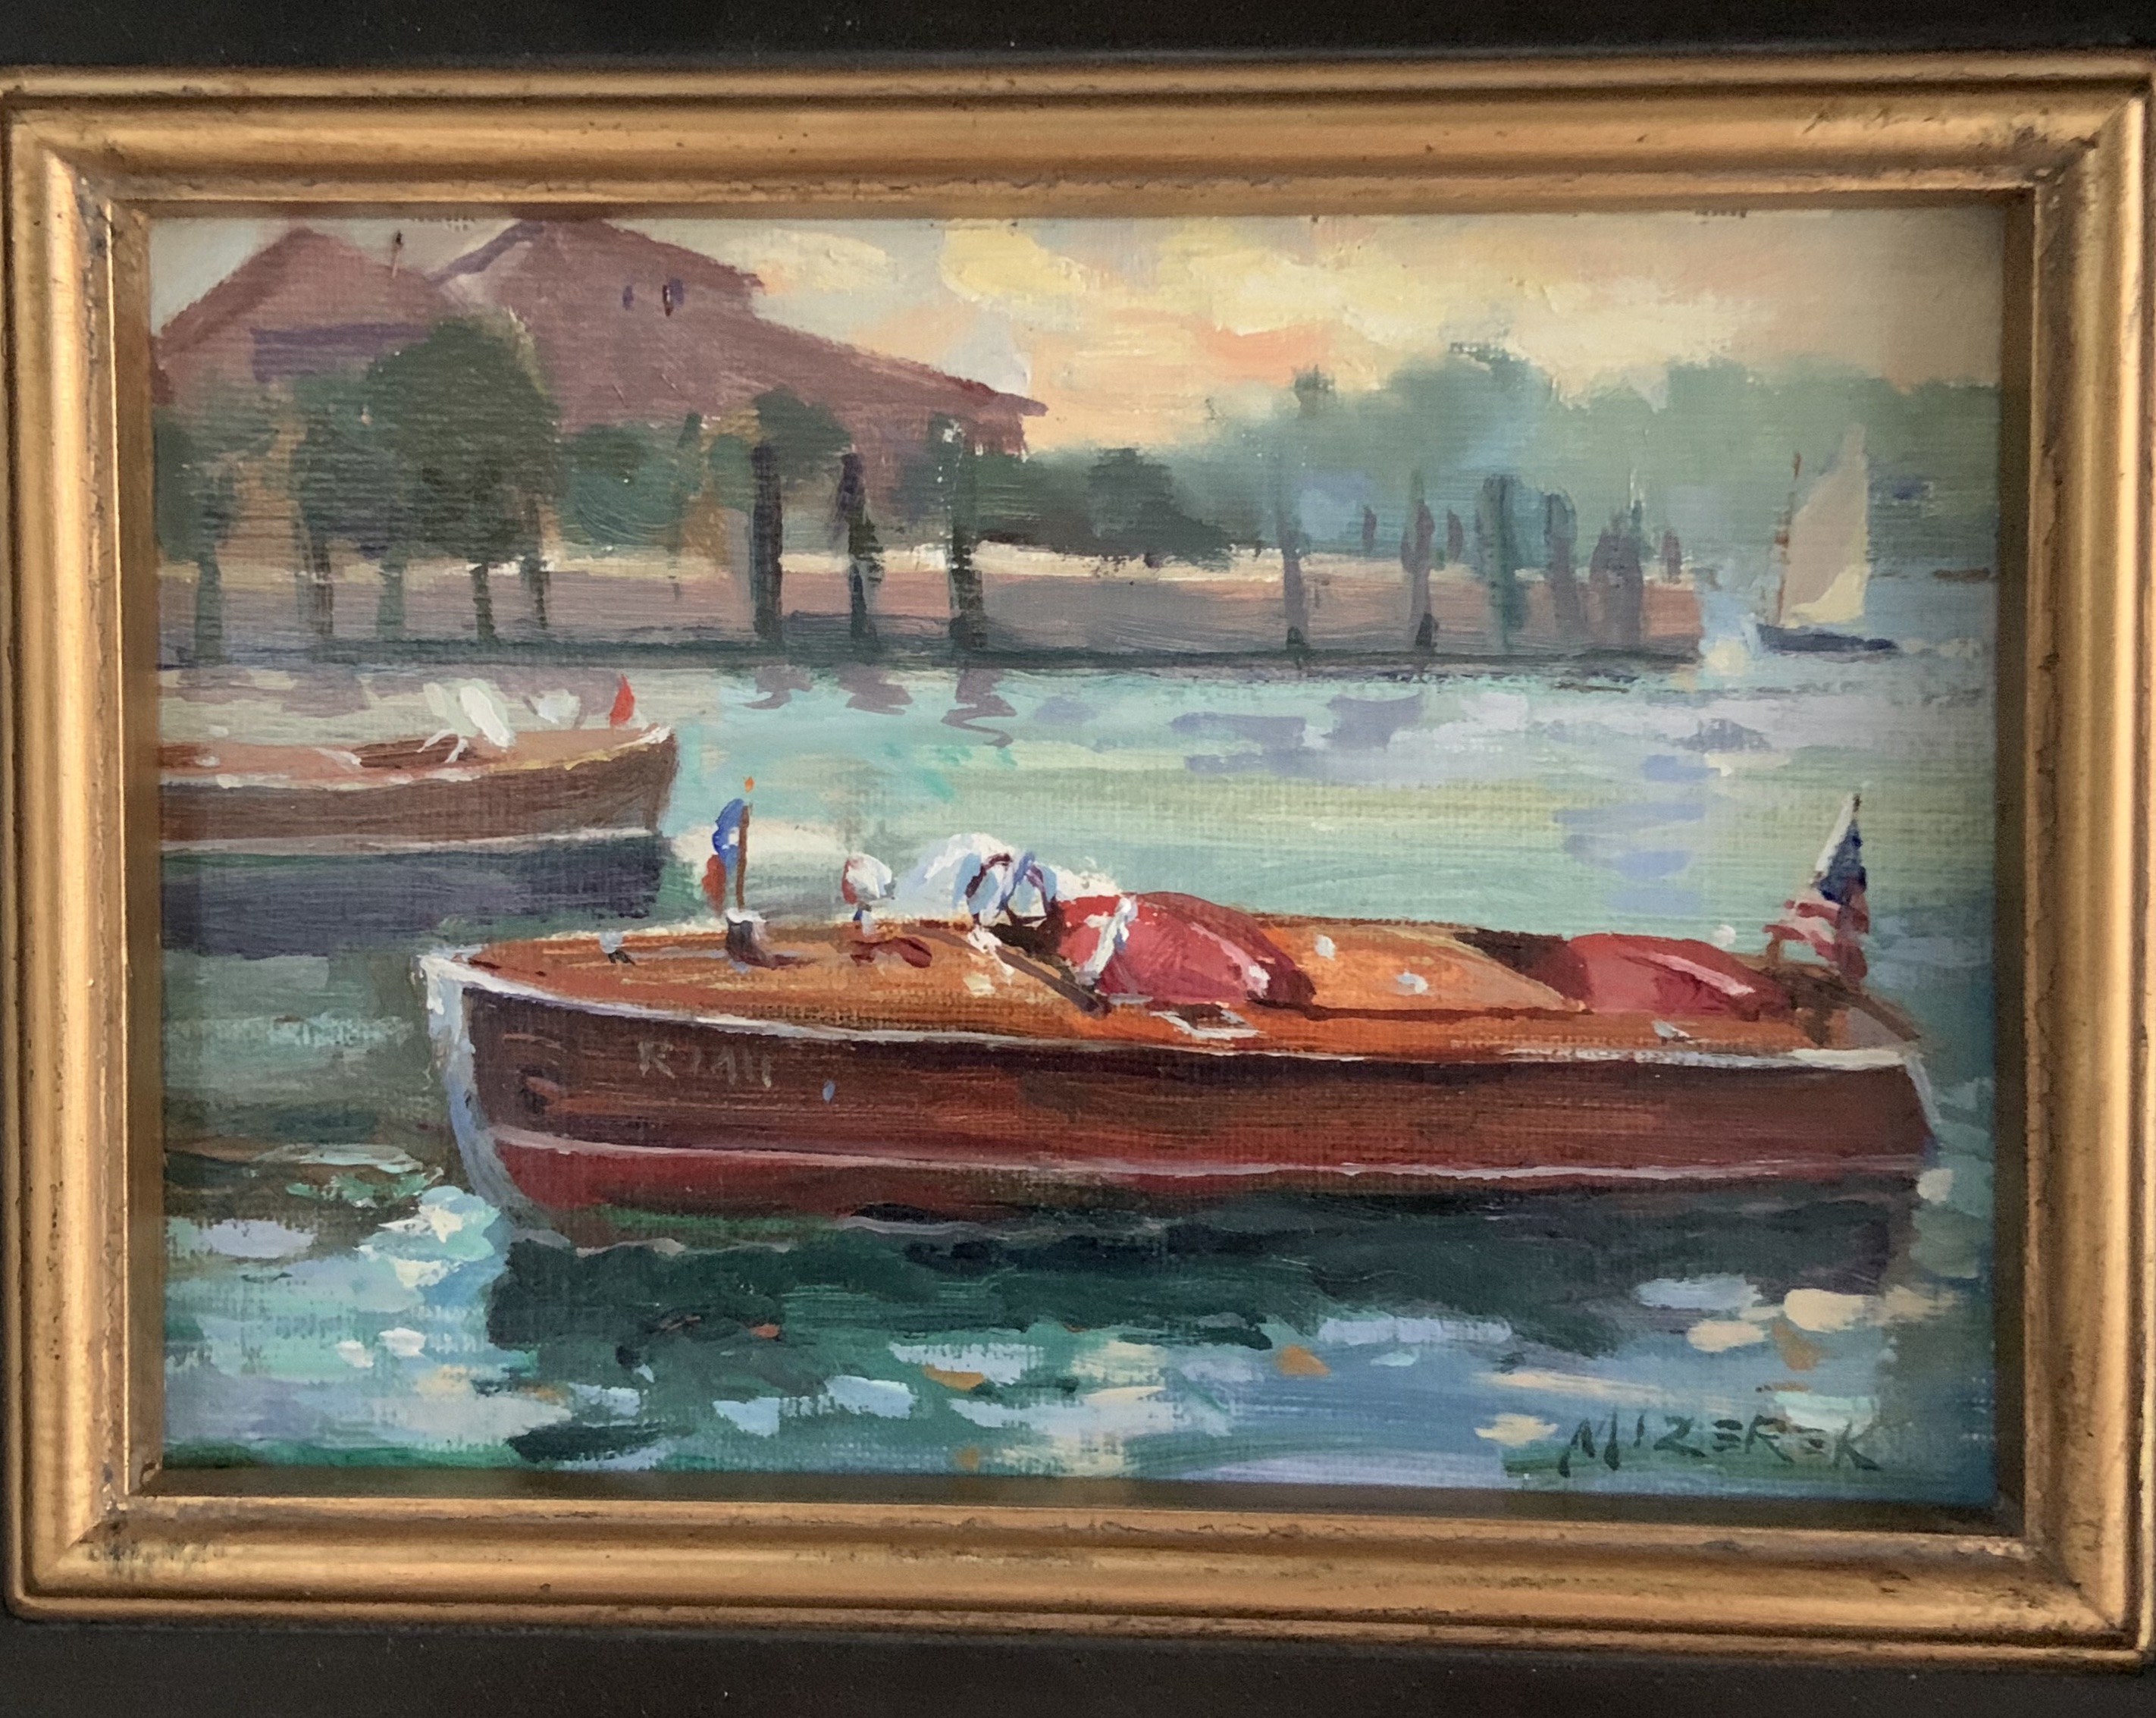 Chris Craft Classic by Len Mizerek, 5x7 $475